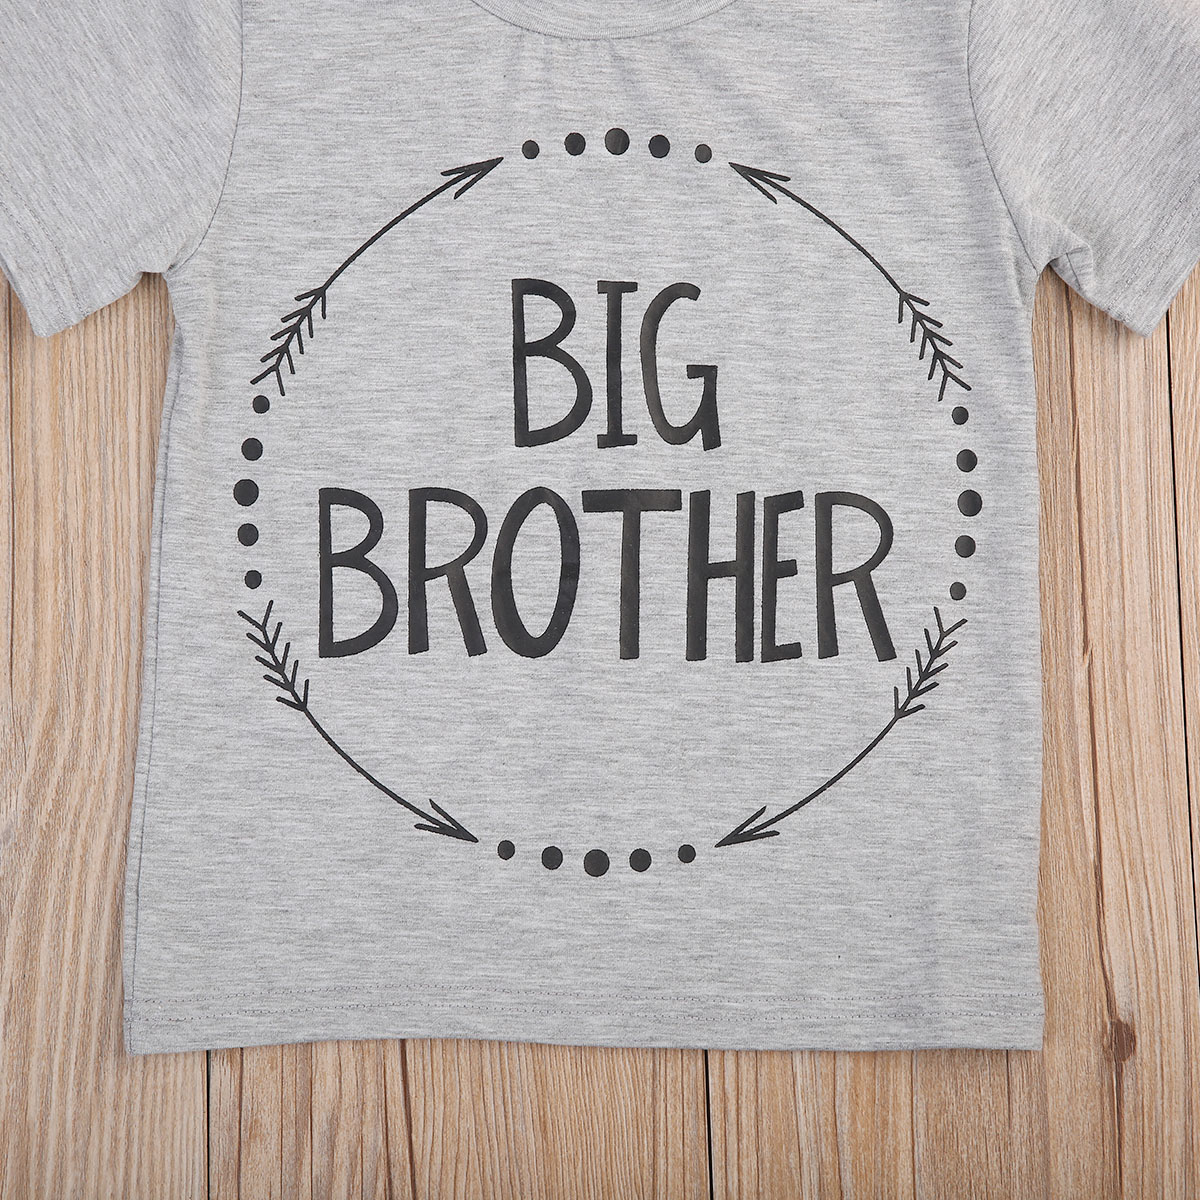 Newborn-Baby-Boys-Kids-Clothing-Top-T-Shirt-Short-Sleeve-Cotton-Letter-Outfit-Clothes-Tops-Boy-3